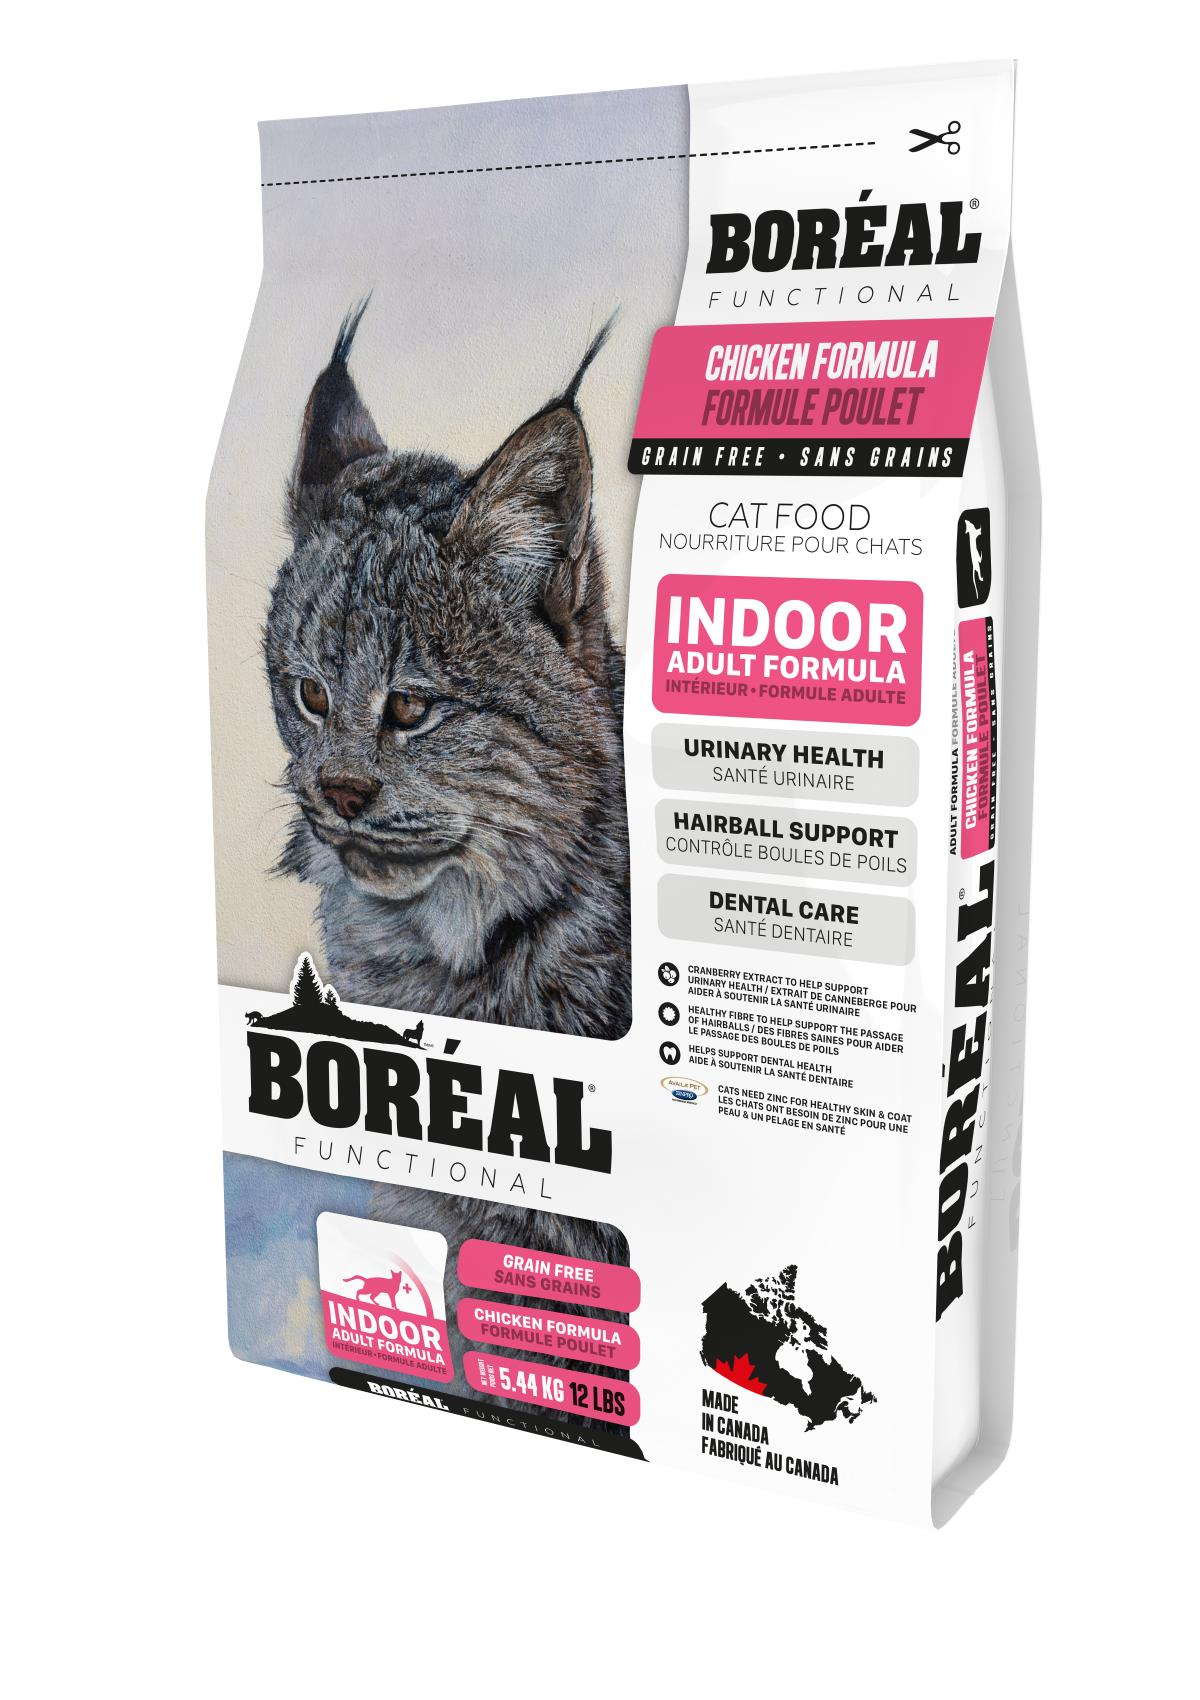 Boreal Functional, Indoor, All Breeds, Chicken Formula Dry Cat Food, 5.44kg